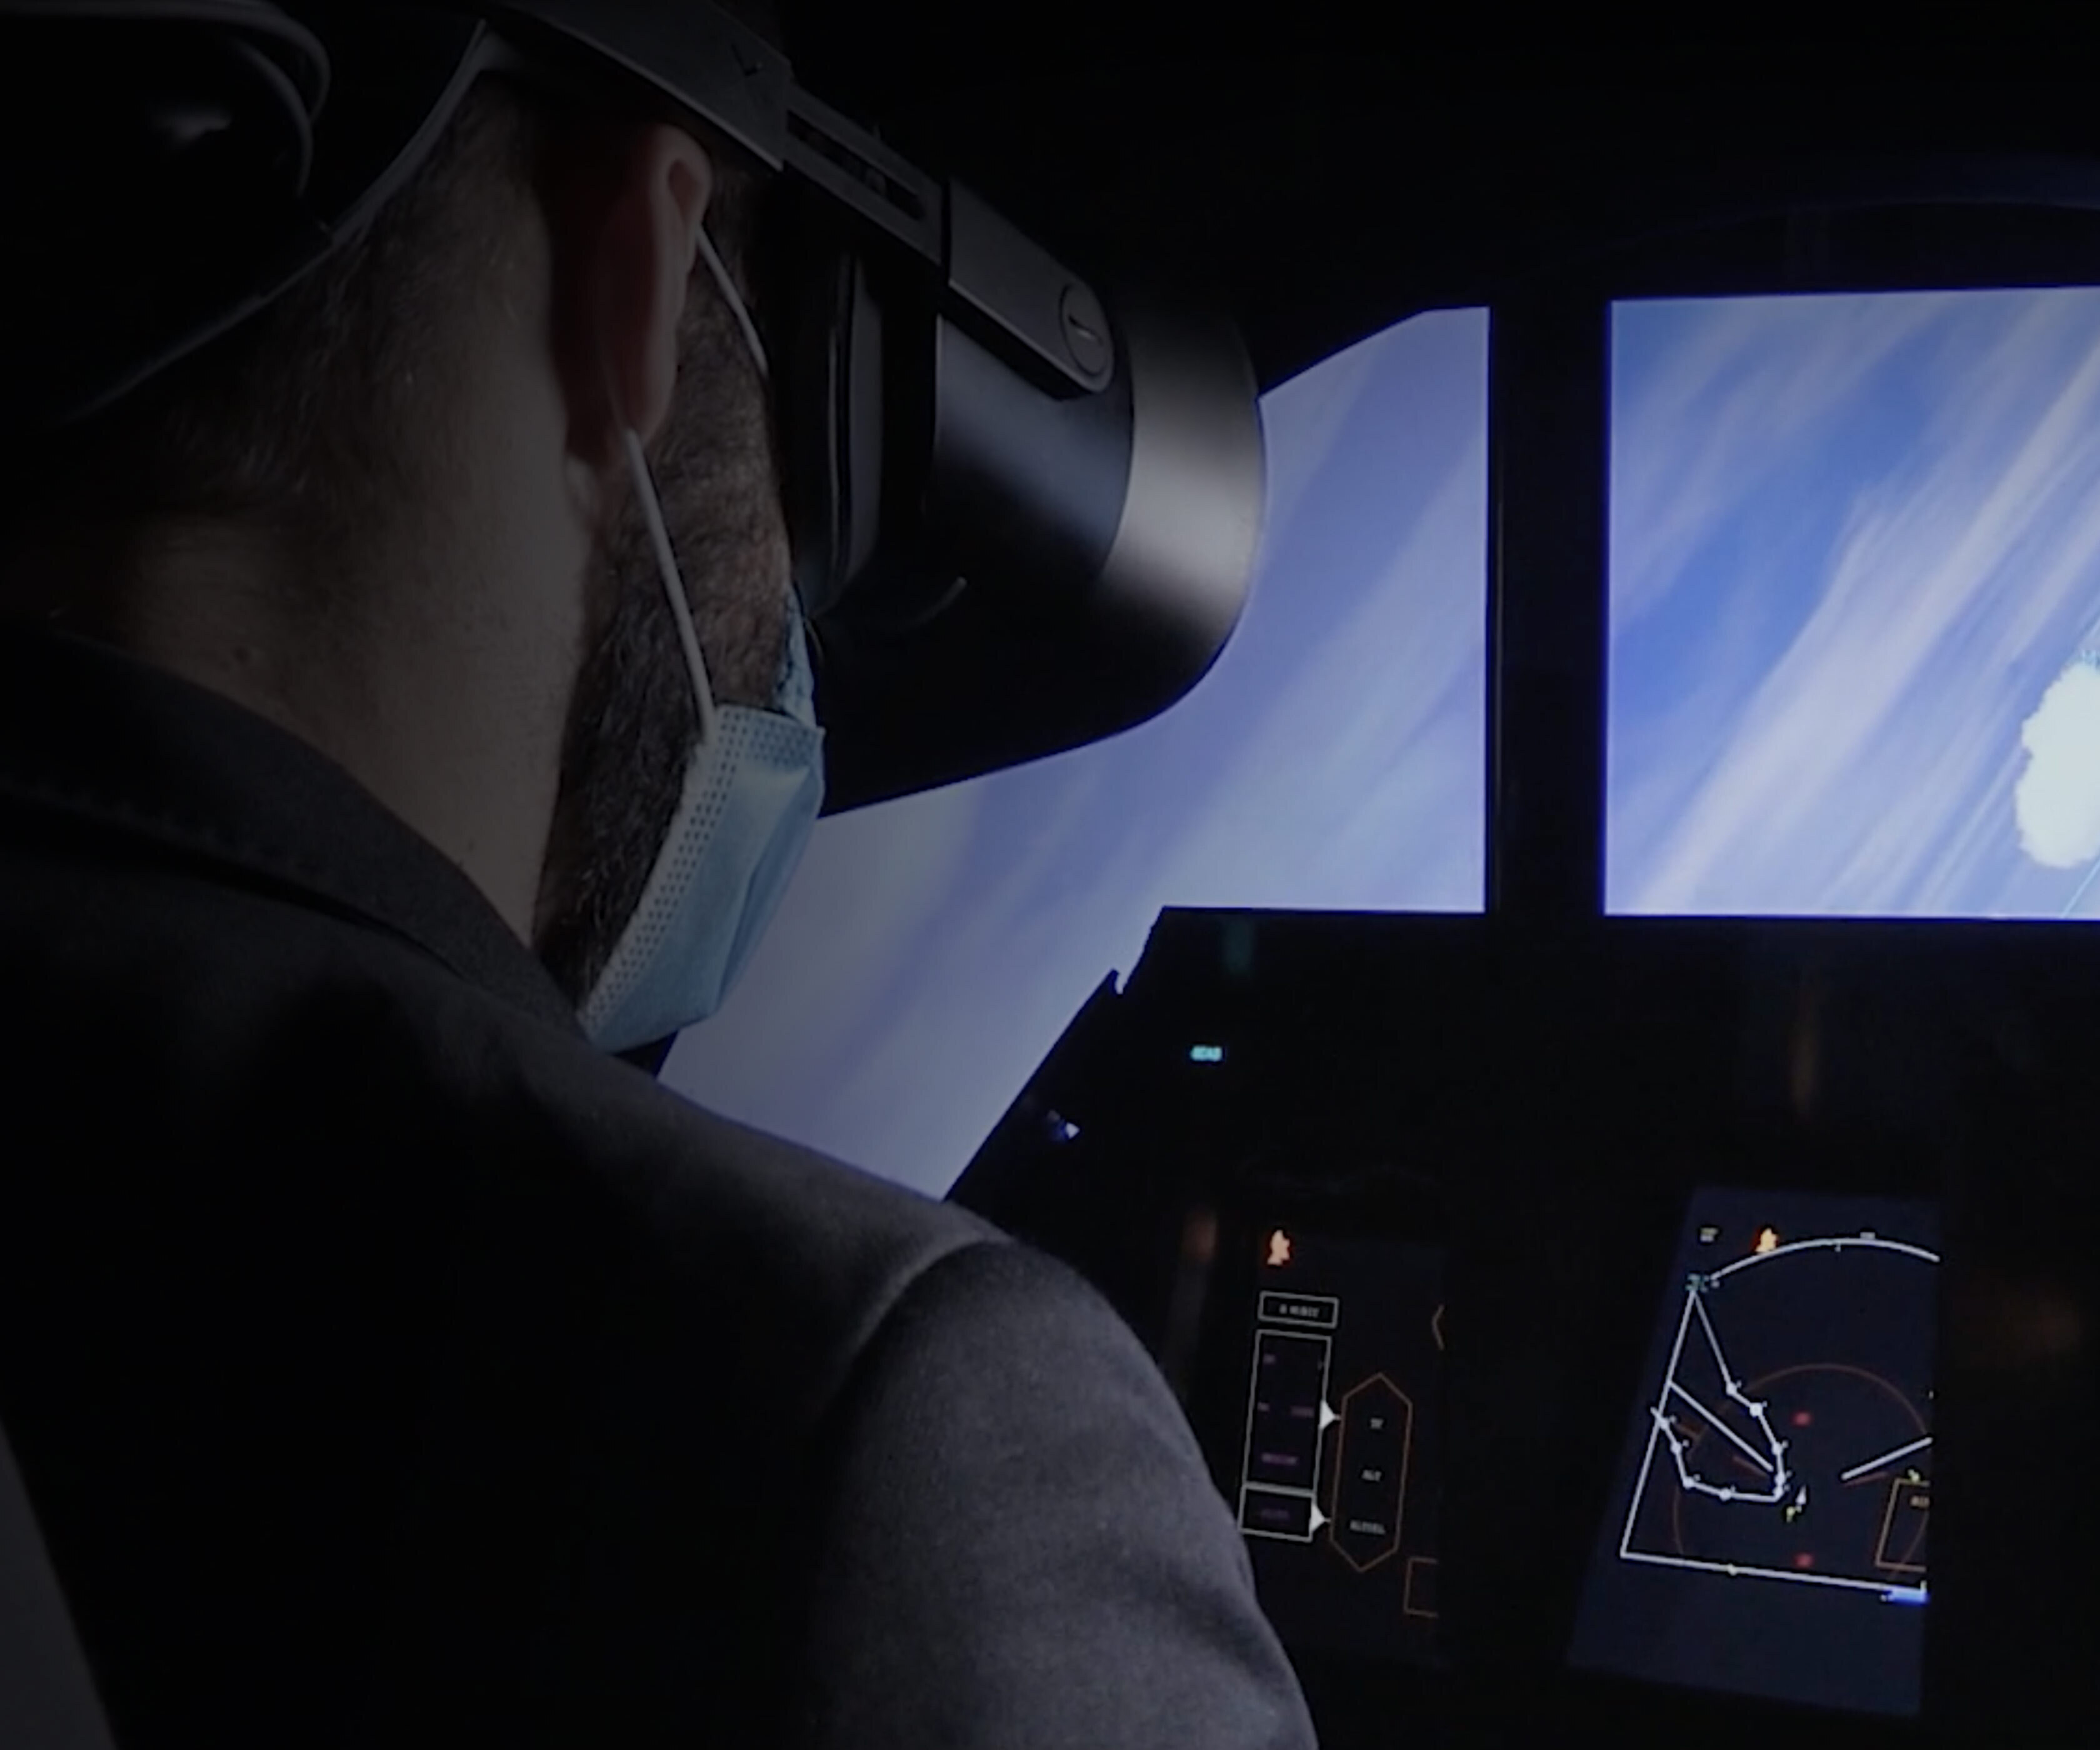 Case Dassault Aviation & Varjo: Enhanced realism in virtual and mixed reality simulations for aviation training